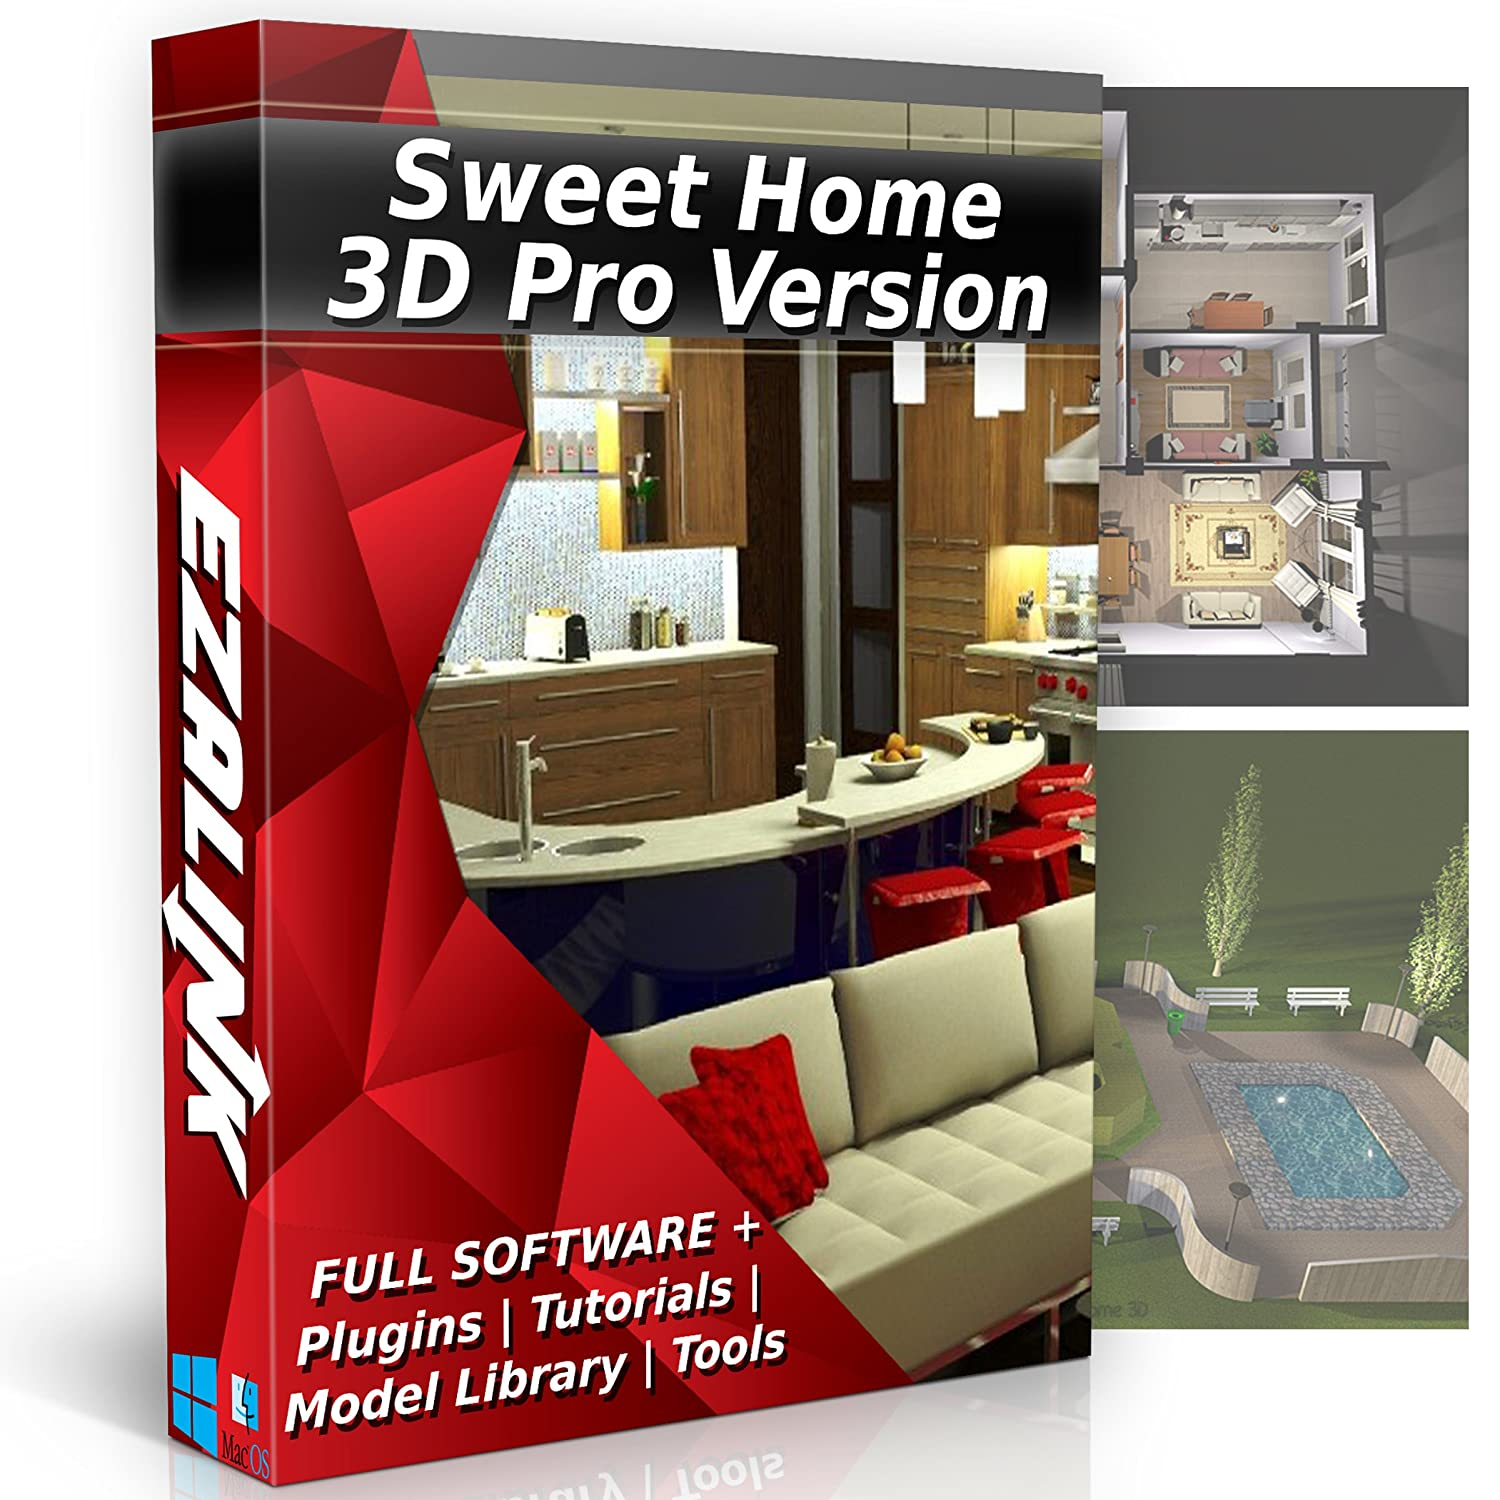 Sweet home 3d interior design house architect designer suite software pro w 3d models plugins tools tutorials chief cad program for windows pc mac